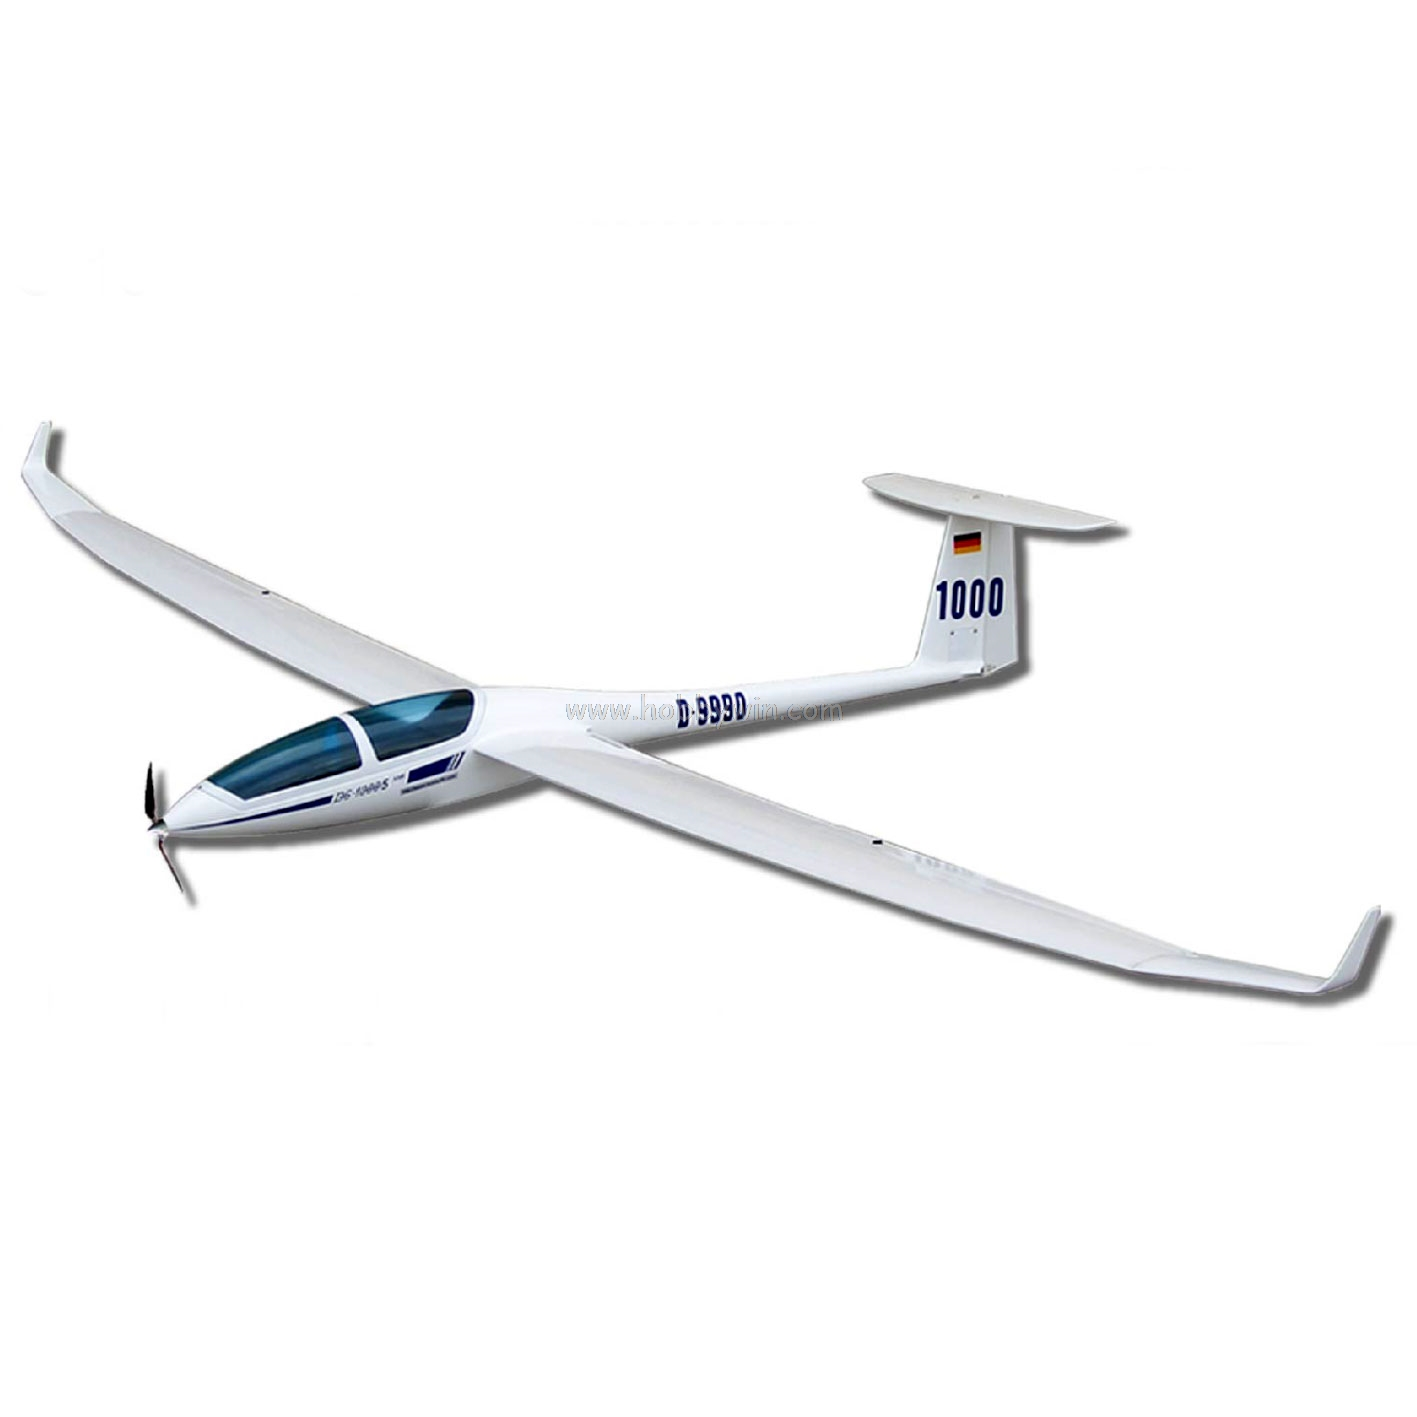 US $126 0 |DG 1000 Electric Glider 2630mm unassembled KIT Fiberglass  fuselage & Wood wings RC model sailplane-in RC Airplanes from Toys &  Hobbies on